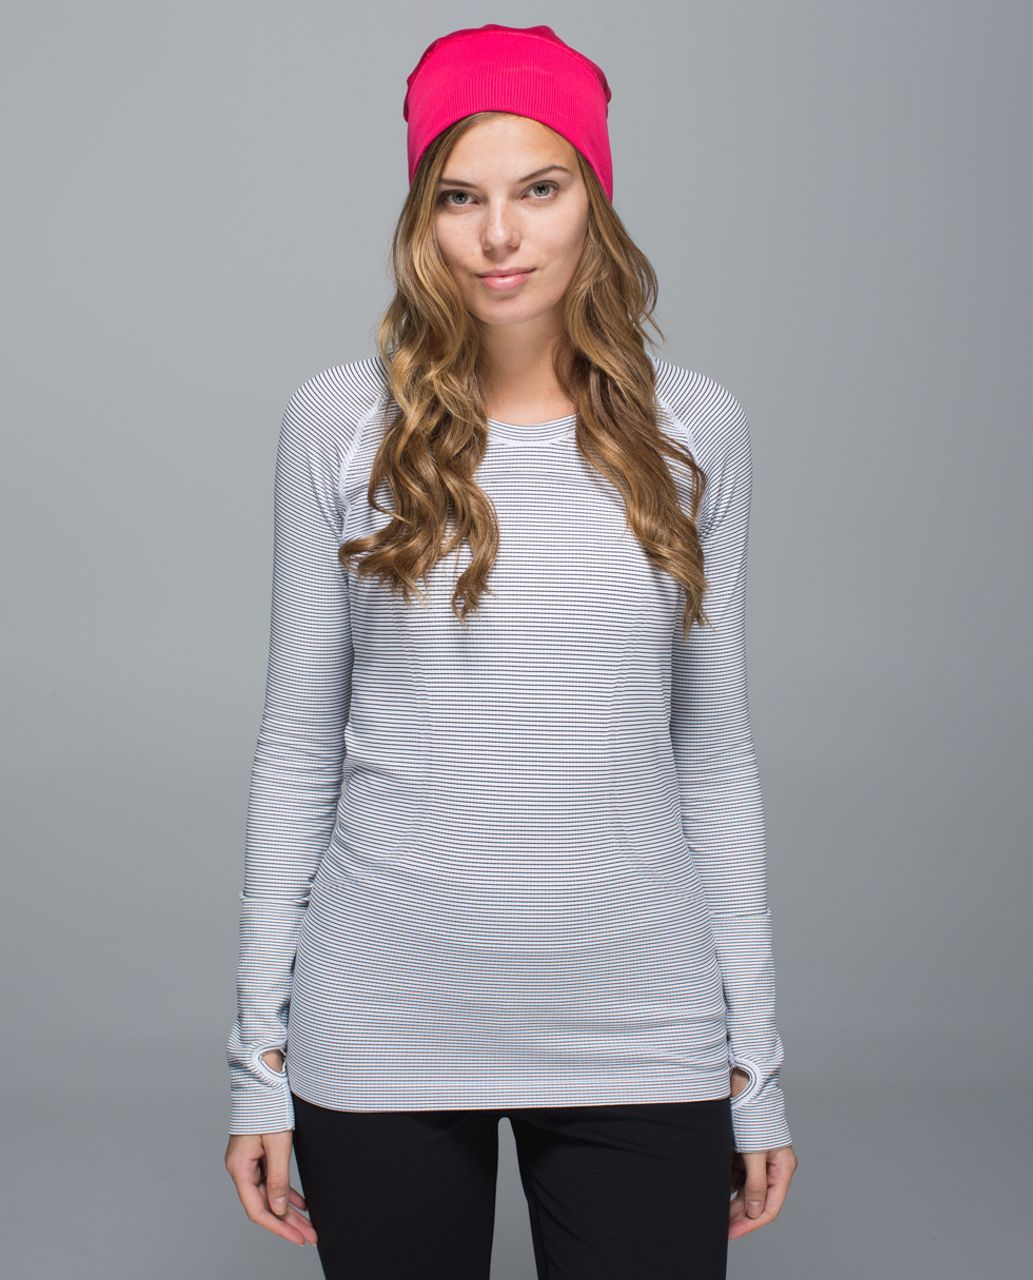 Lululemon Run With Me Toque - Deepest Cranberry / Double Trouble Stripe Boom Juice Deepest Cranberry